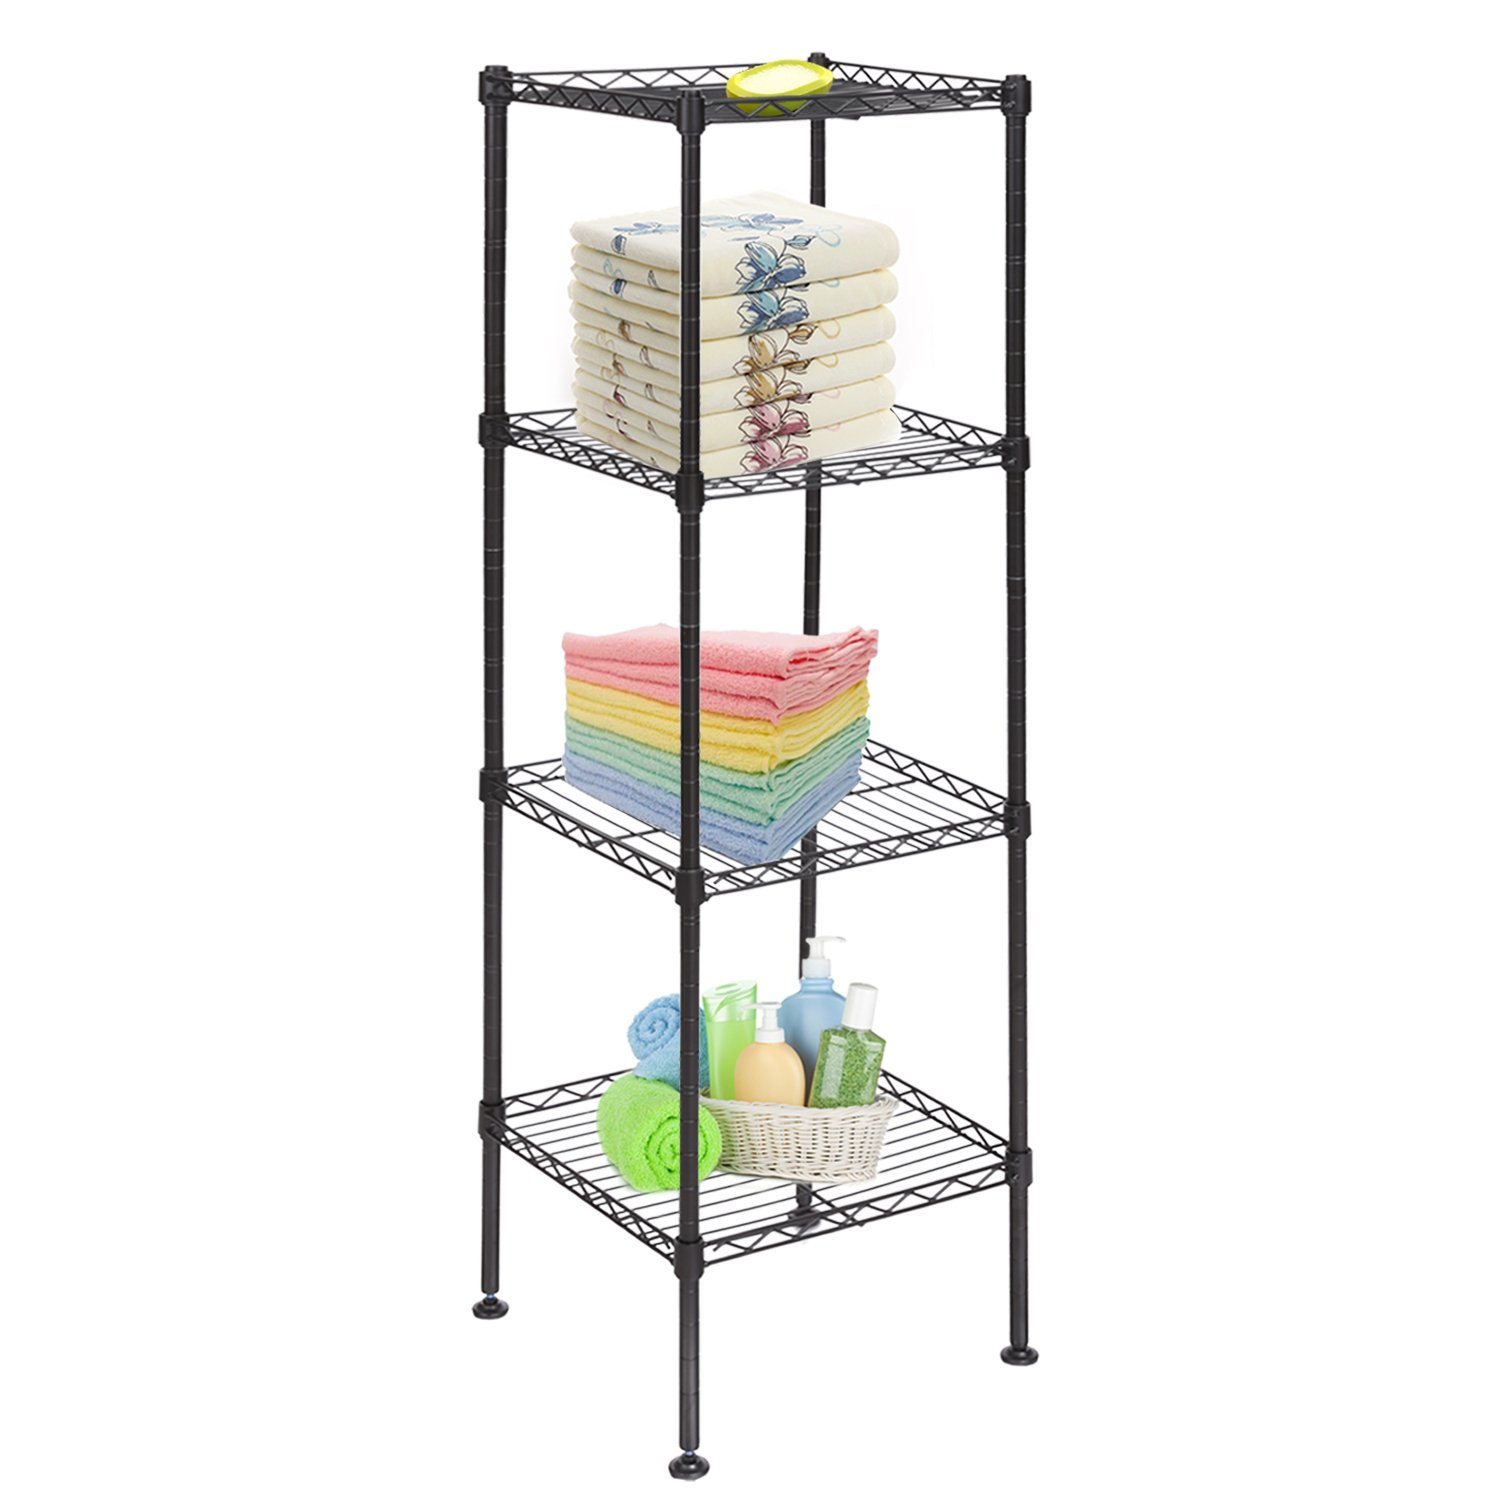 Dorfin Metal Storage Shelves, Wire Storage Organizer Rack 4-Tier Shelving Unit for Kitchen Living Room Bathroom Bedroom by, Black by Dorfin